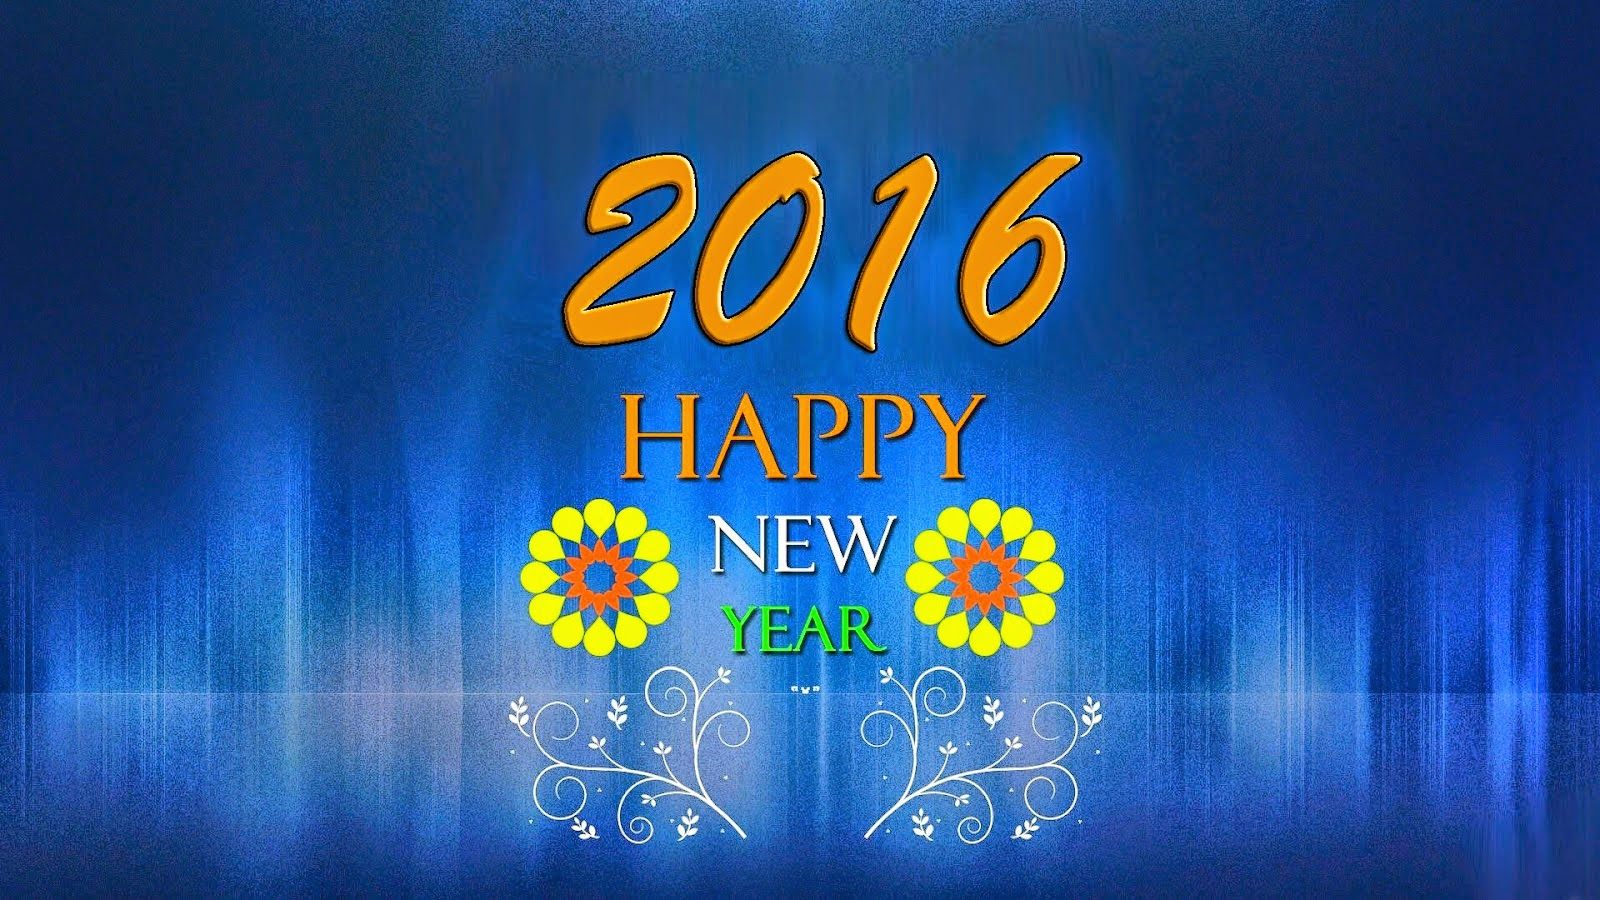 Happy New Year 2016 Download 3D Wallpapers Happy New Year 2016 1600x900